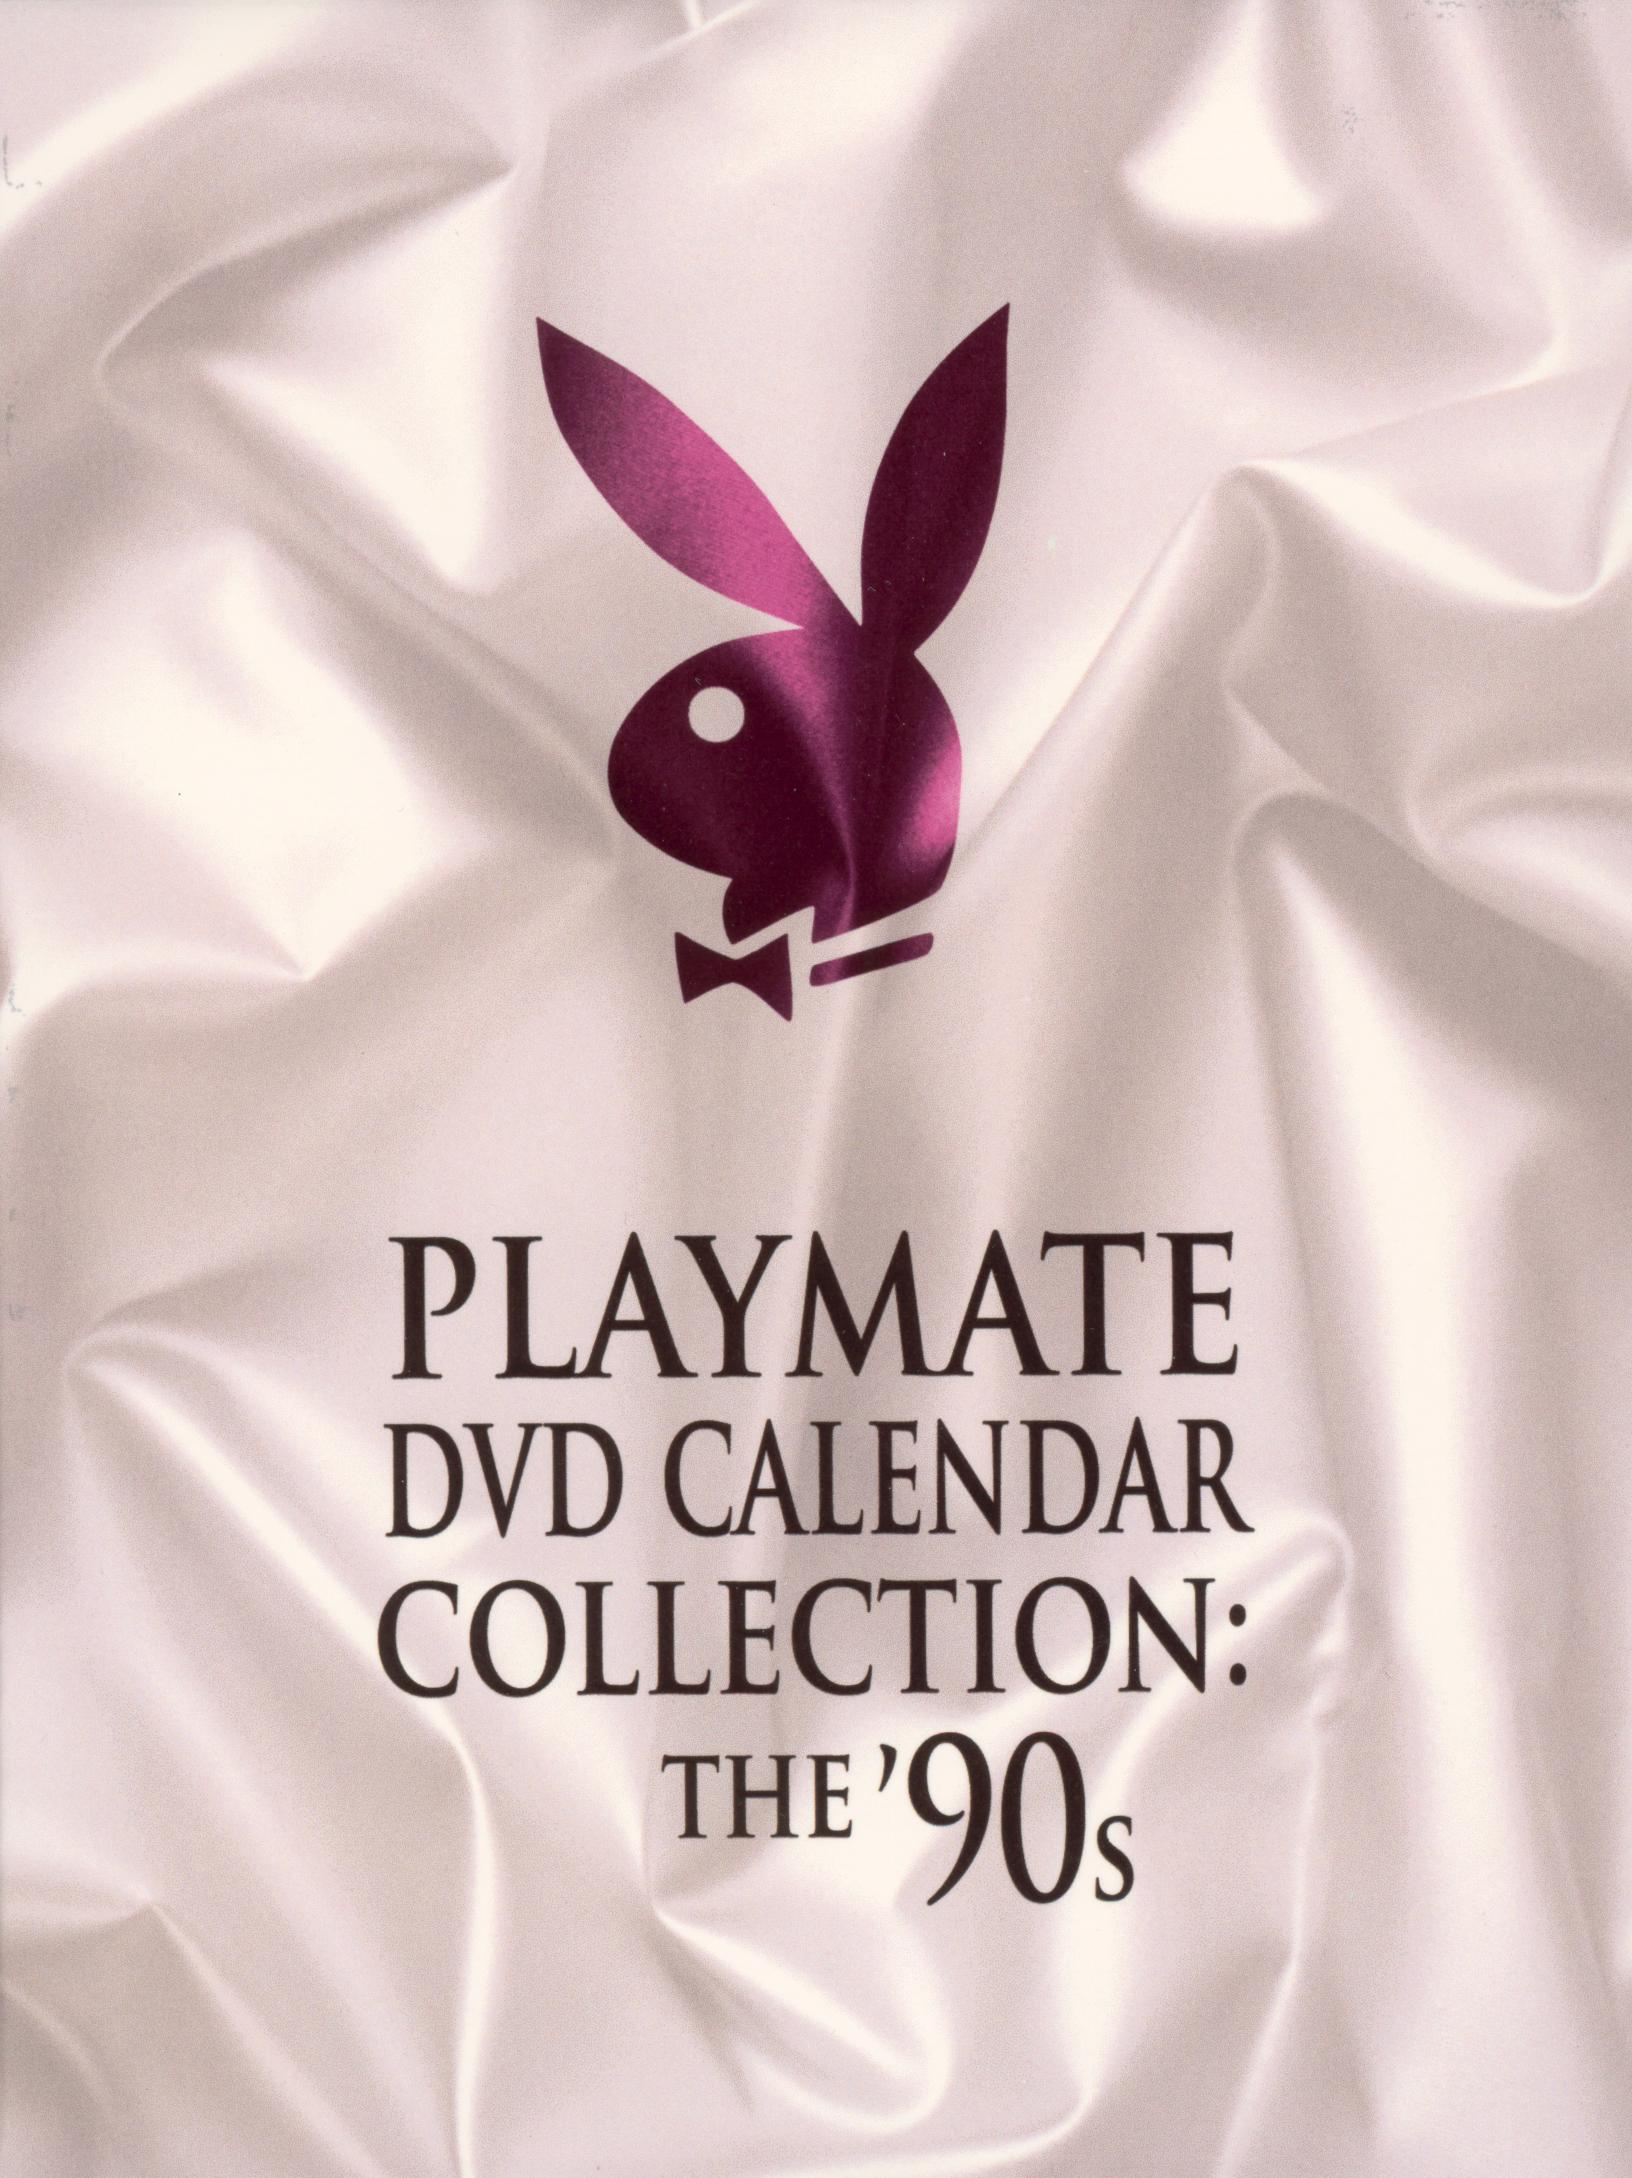 Playboy: Playmate DVD Calendar Collection - The '90s